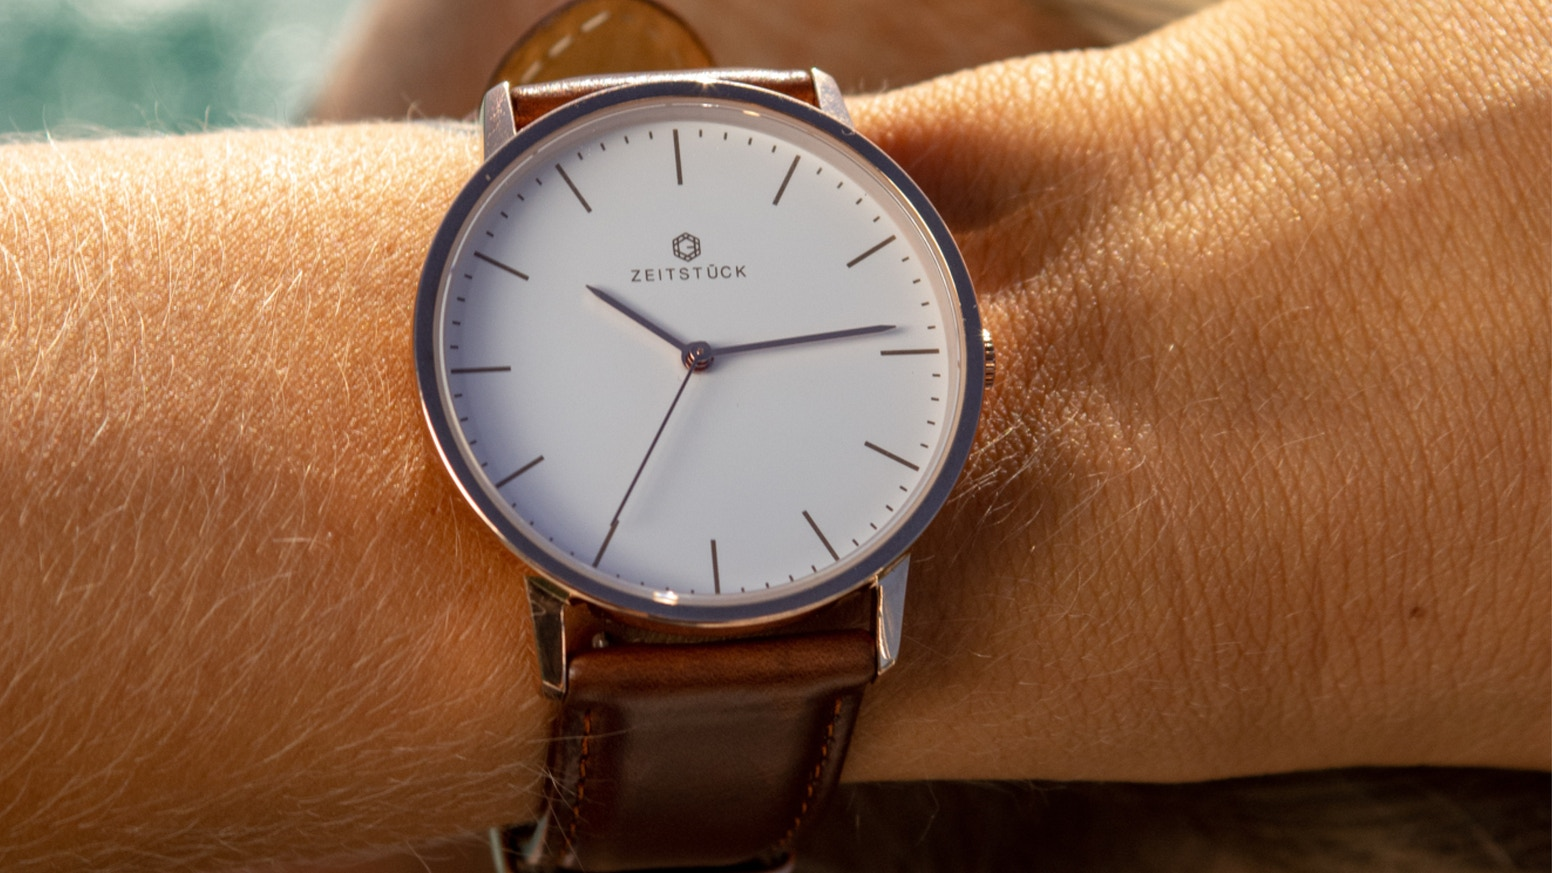 ZEITSTÜCK watches shine with exceptional but simple designs and focuses on detail, minimalism and quality of the product.